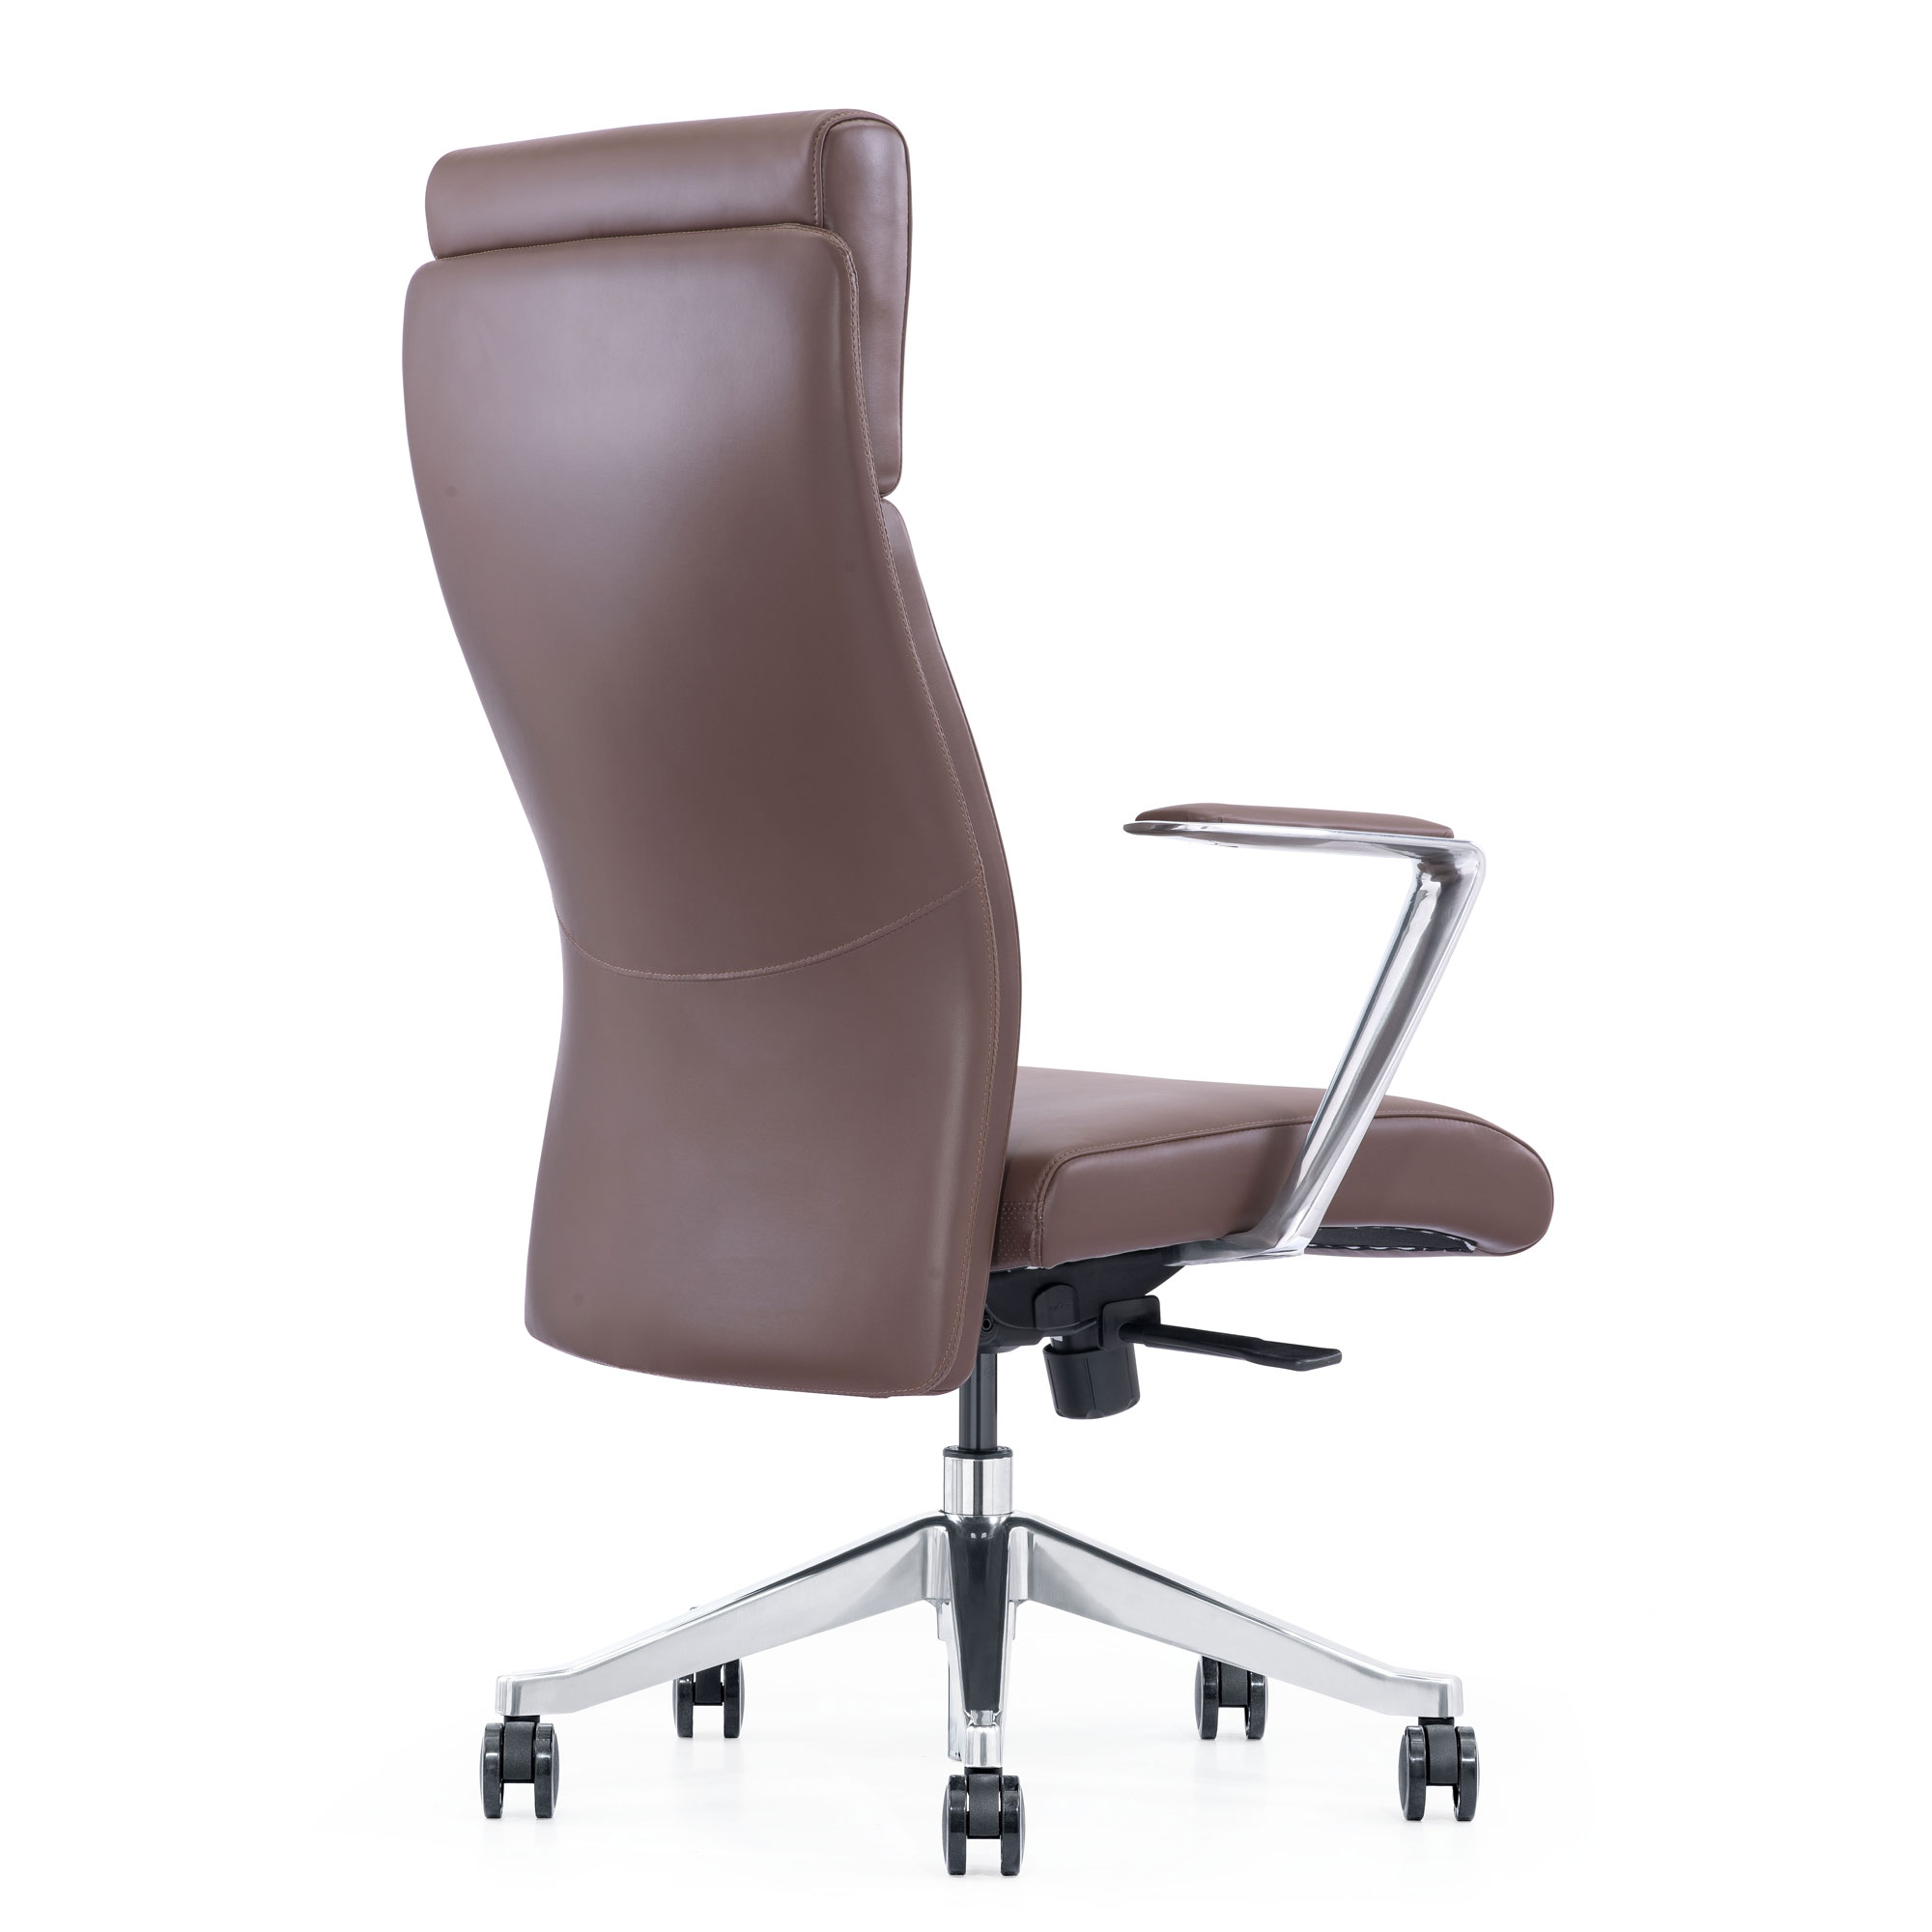 LOD68, brown leather chair, back angle view